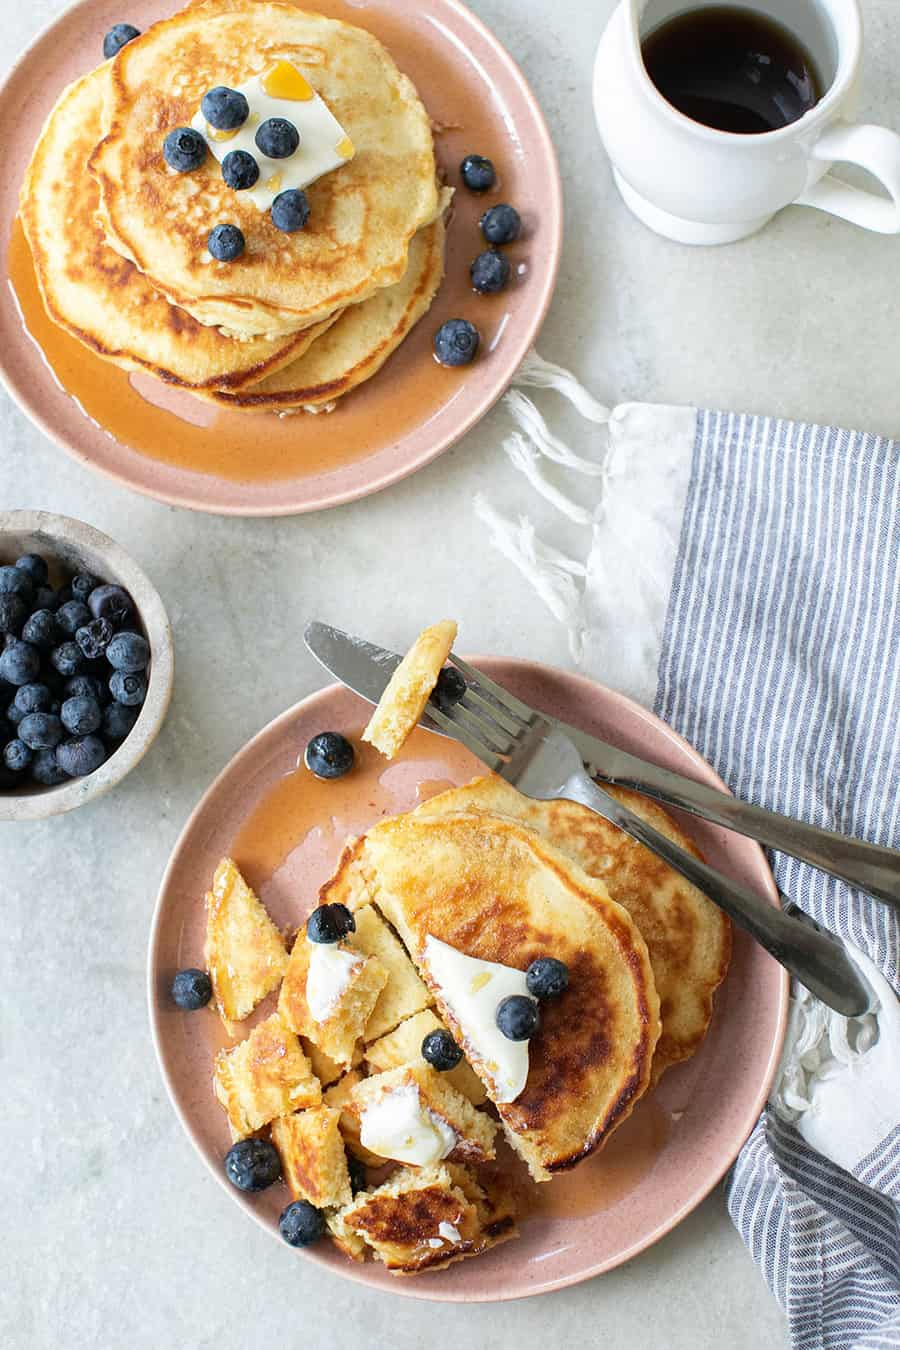 pancakes on a plates with blueberries